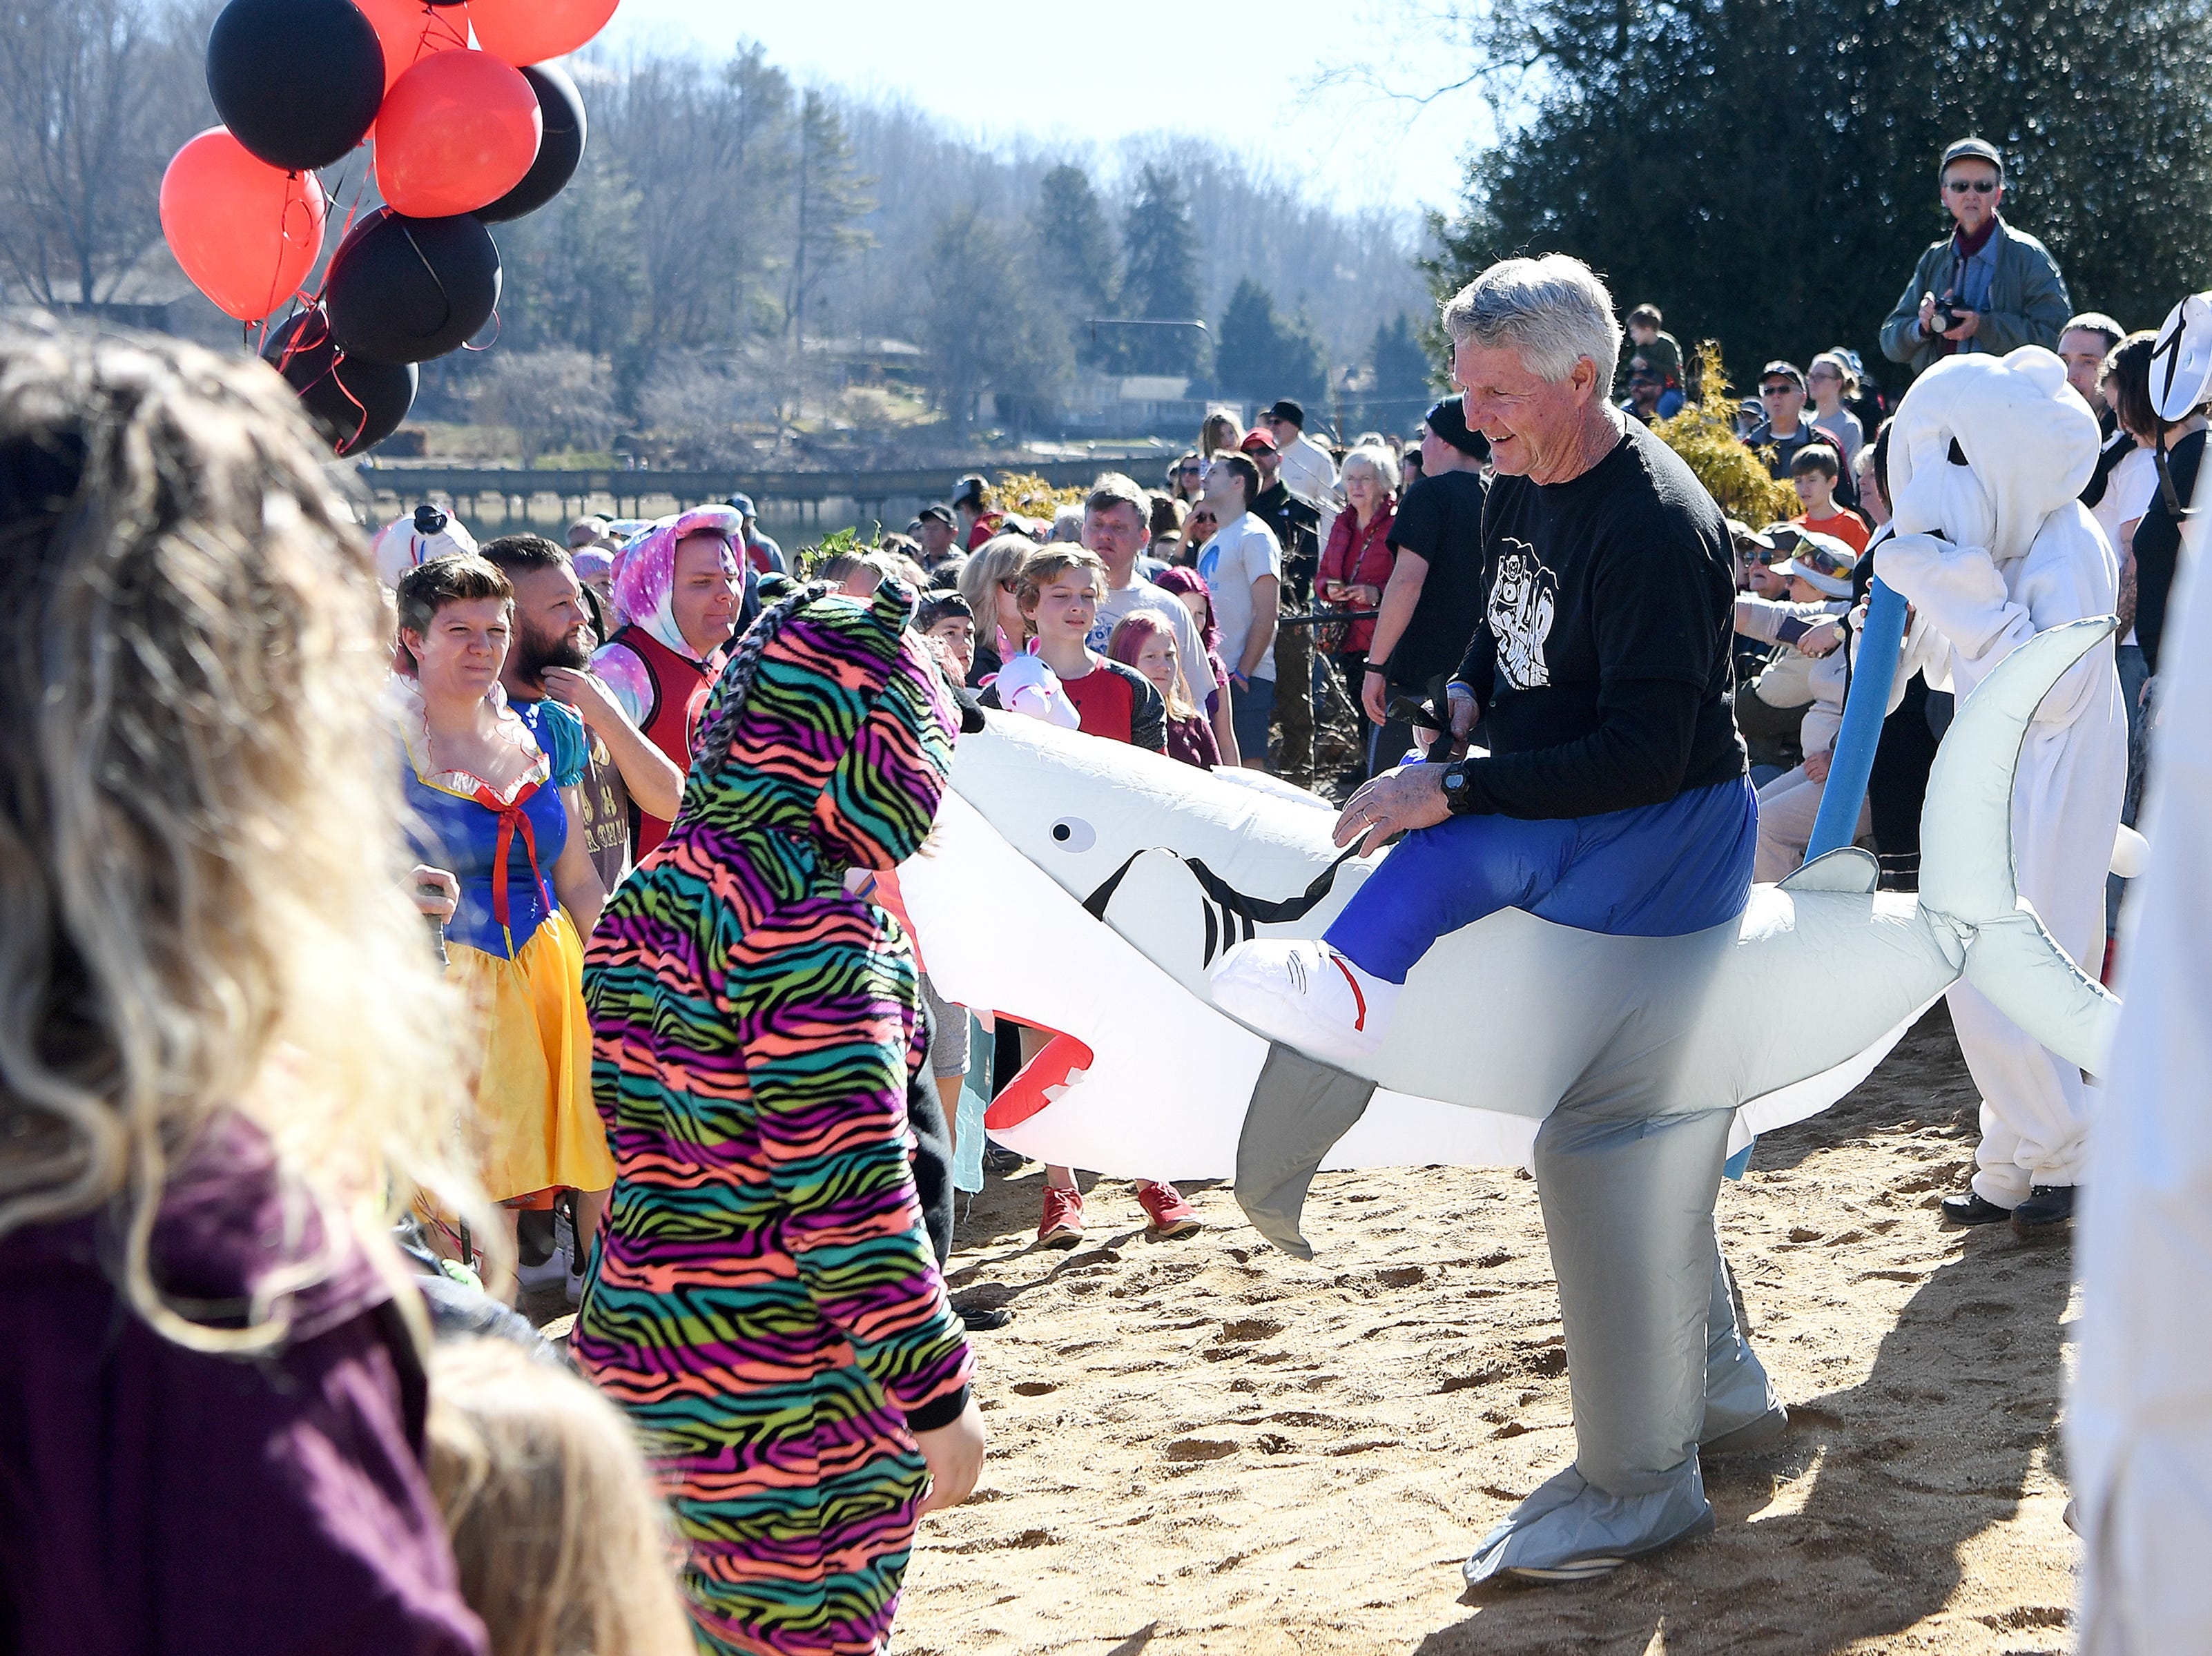 Dan Ebaugh, property manager at Lake Junaluska Conference and Retreat Center and Haywood Waterways board member, navigates his shark costume onto the beach with the other plungers during the 7th Annual Plunge at Lake Junaluska Conference and Retreat Center on Feb. 2, 2019. The event raised more than $30,000 for Kids in the Creek and environmental education.